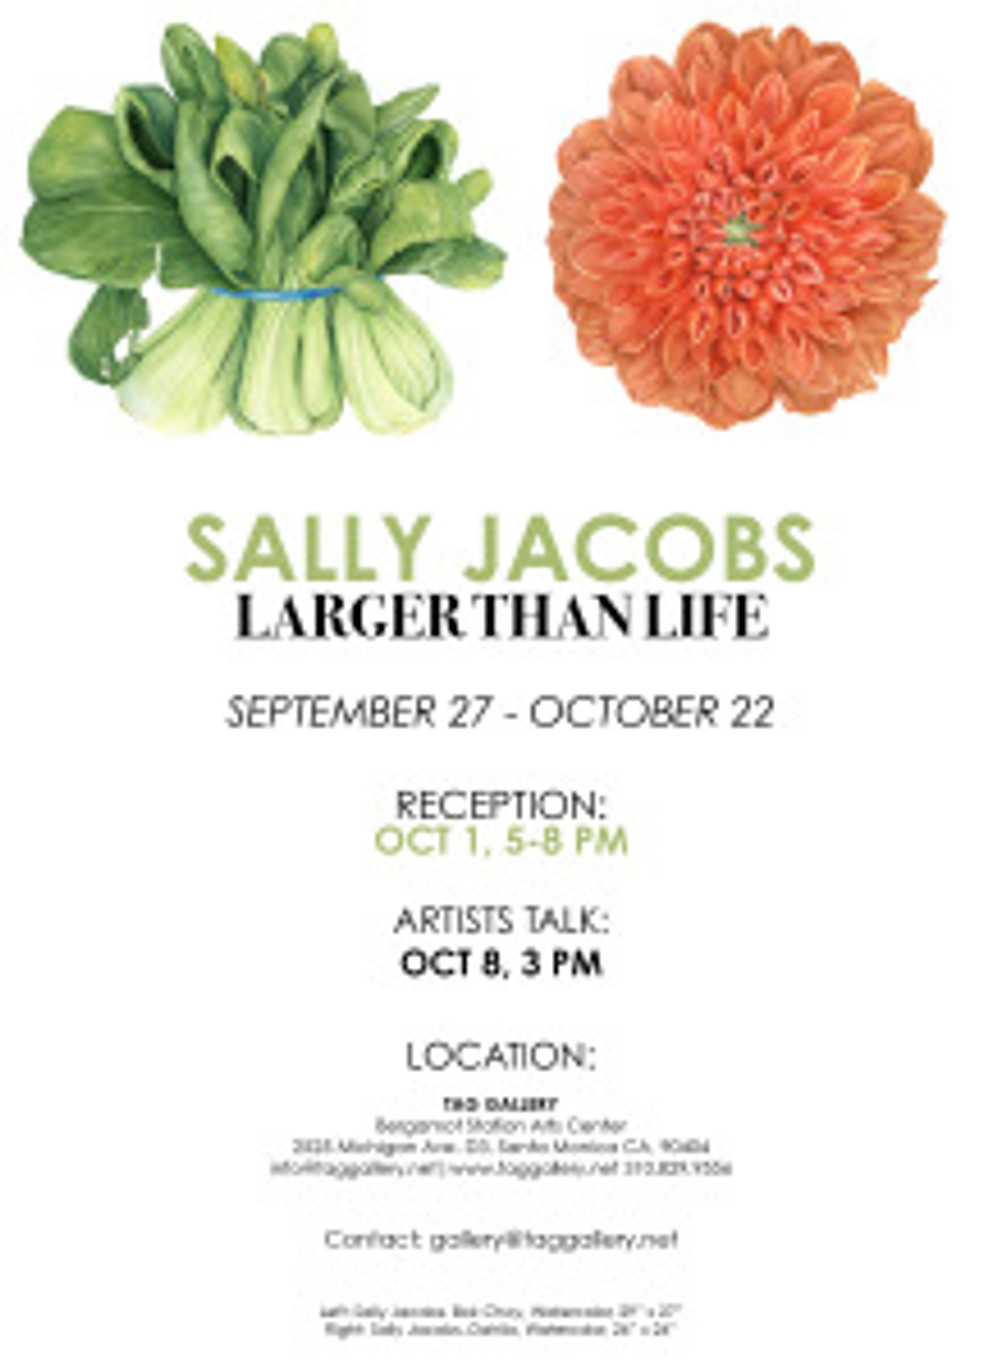 E-invite for Sally Jacobs exhibition, Larger than Life at TAG Gallery.